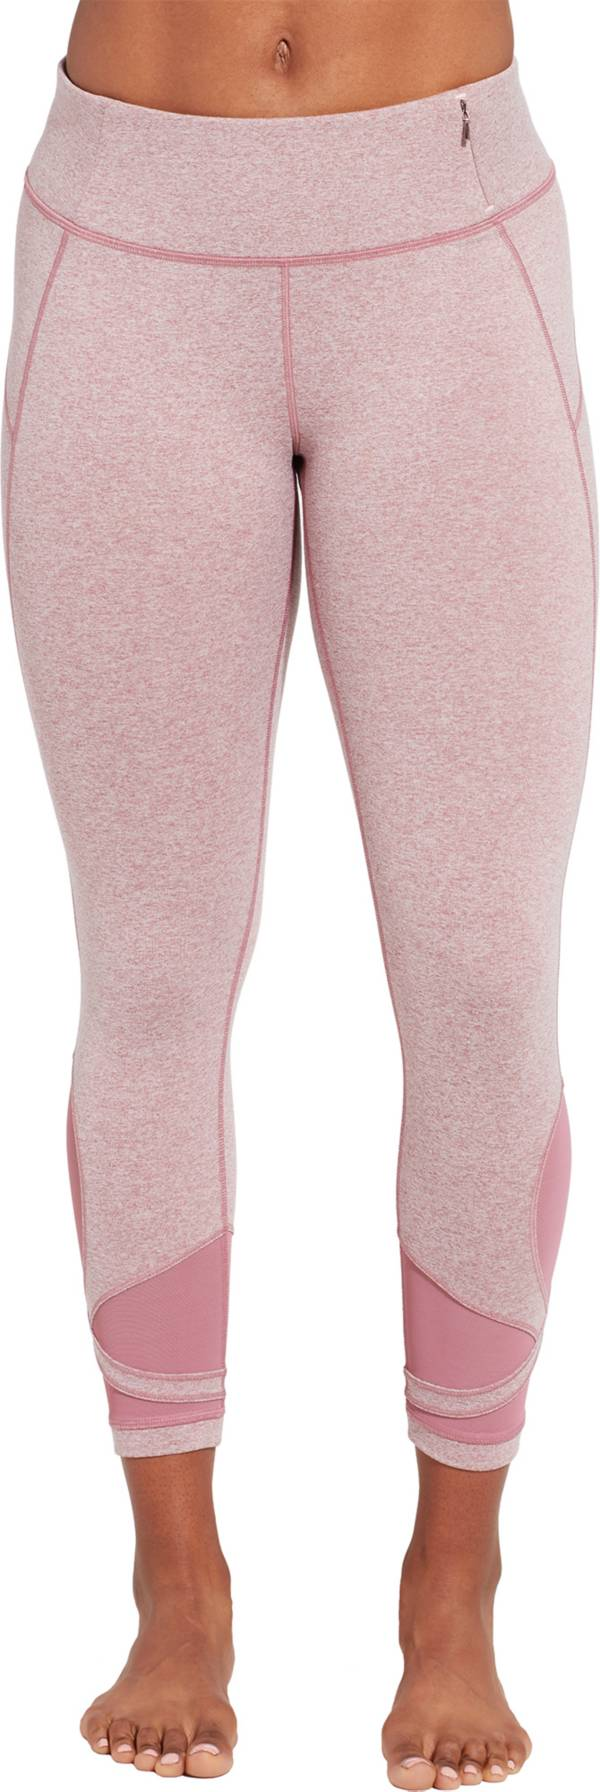 CALIA by Carrie Underwood Women's Essential 7/8 Wrap Leggings product image